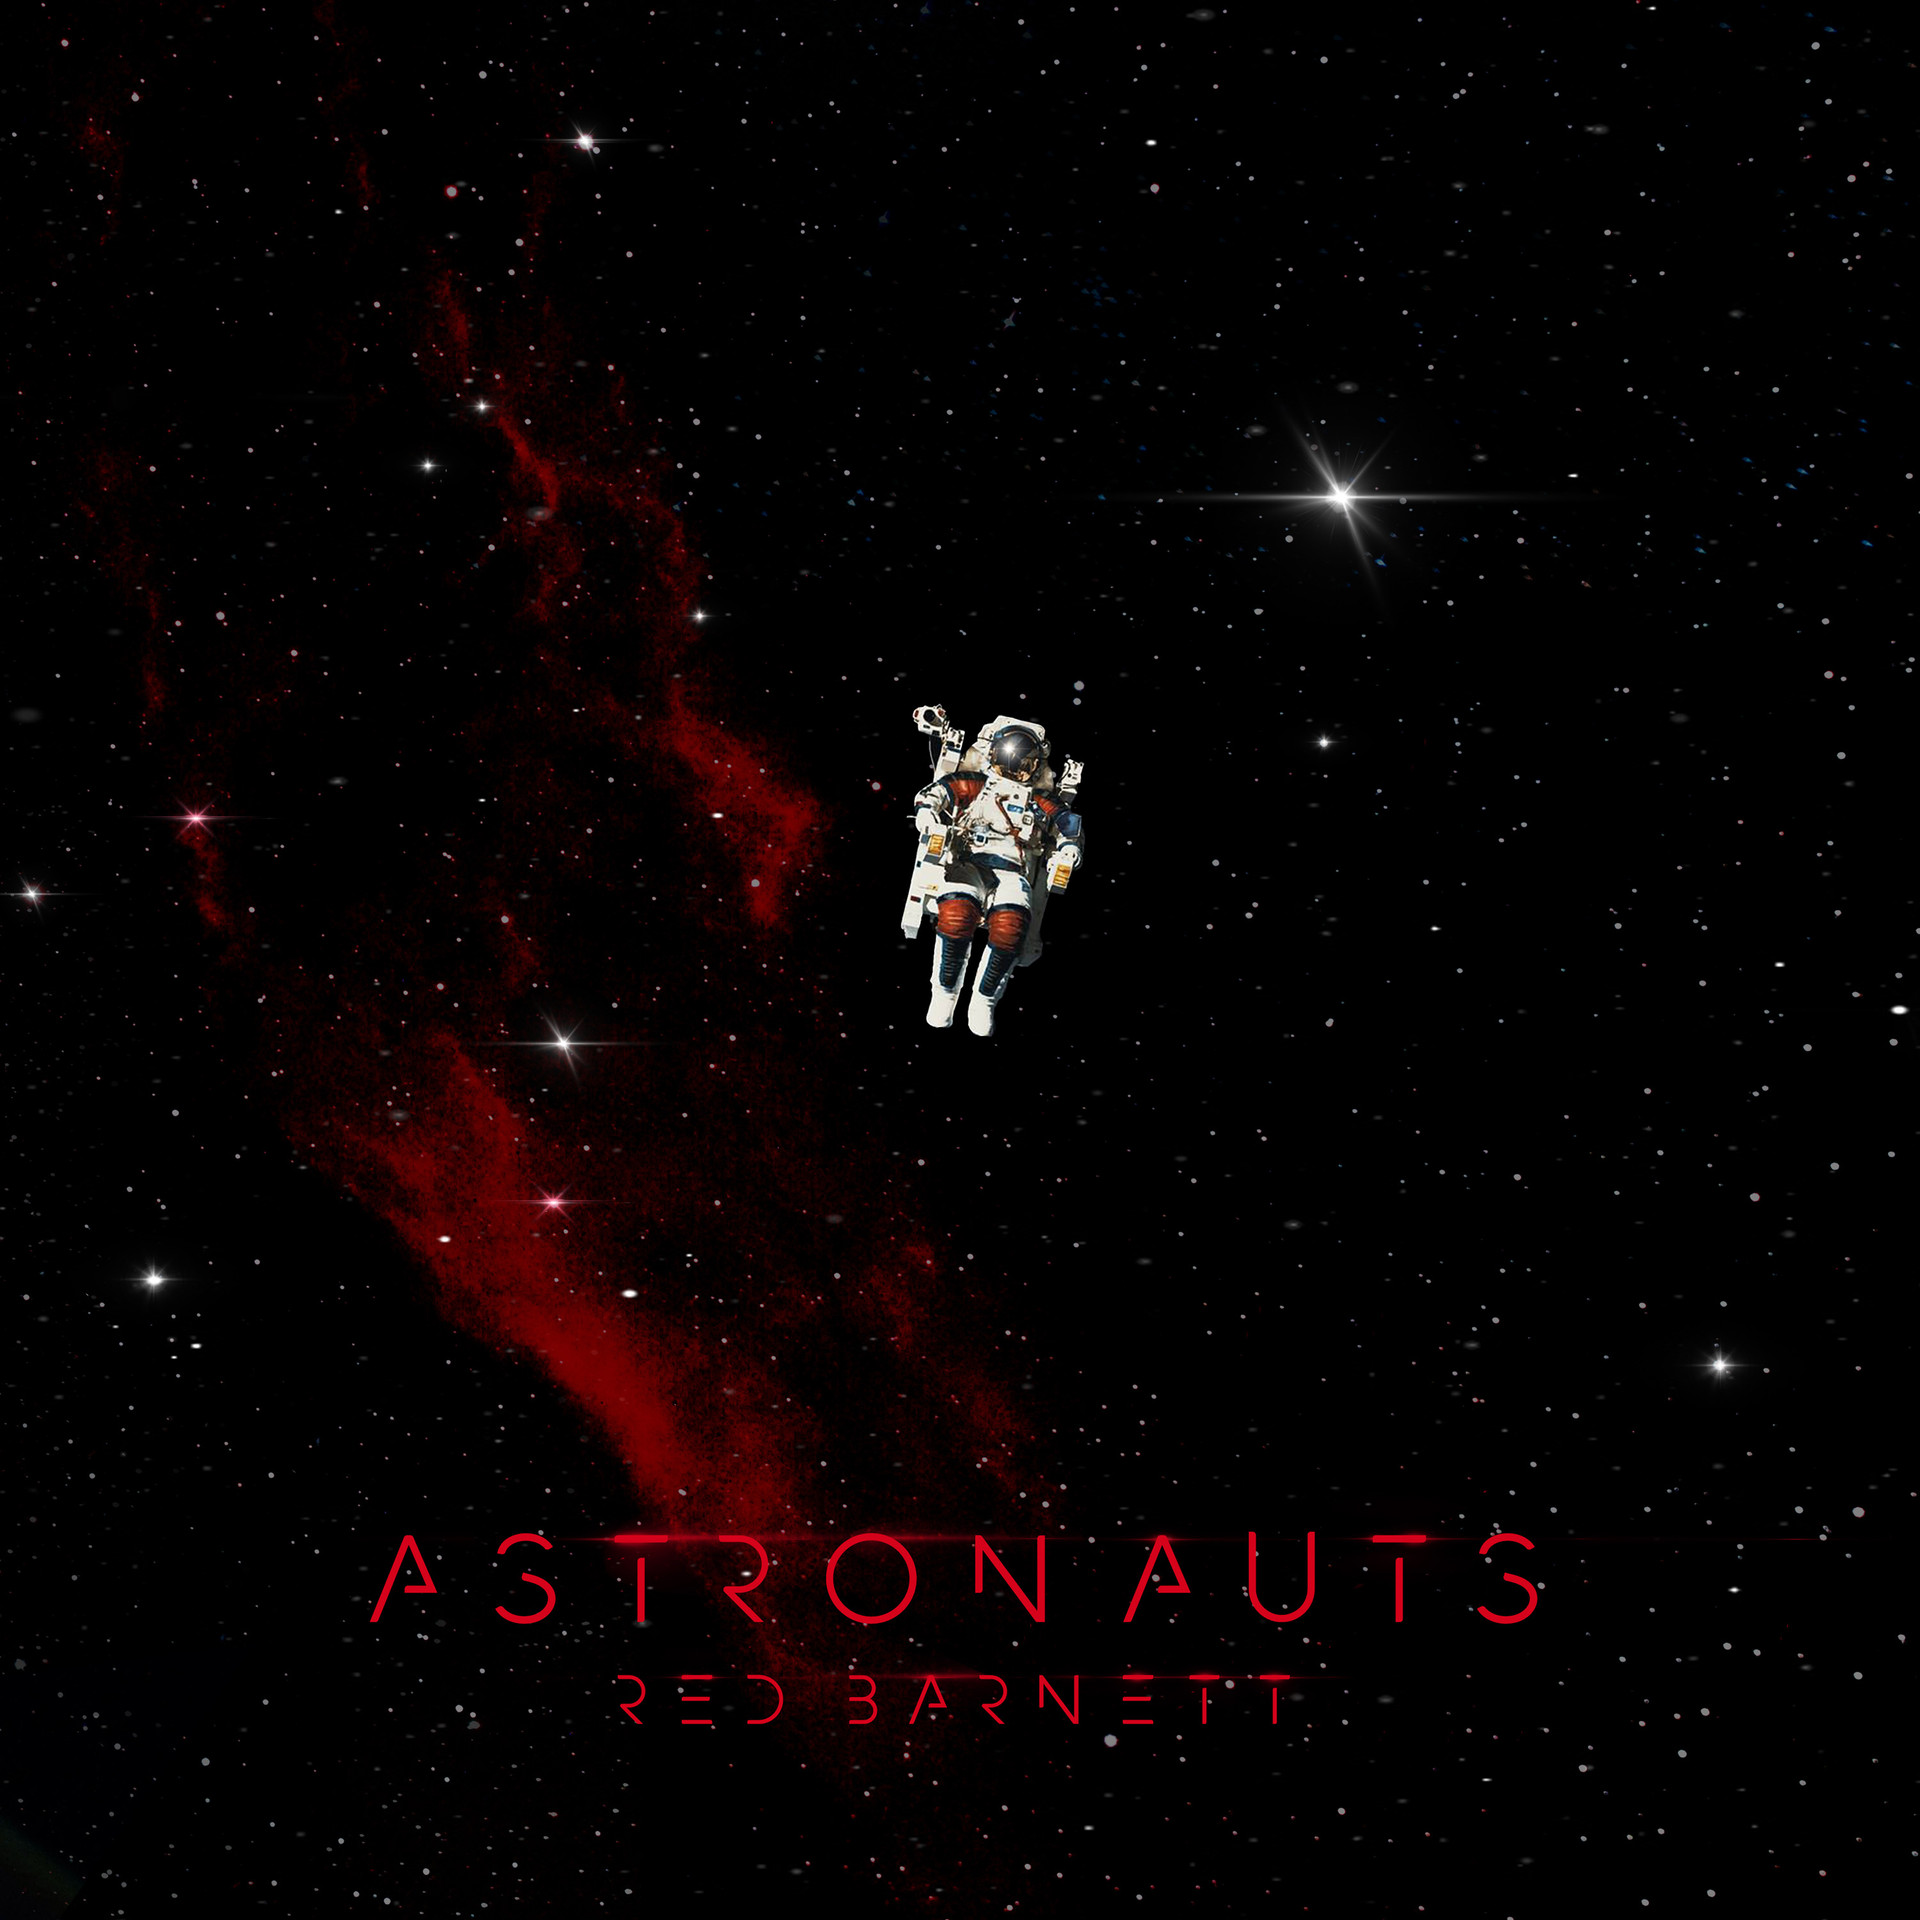 Astronauts-Cover.jpg